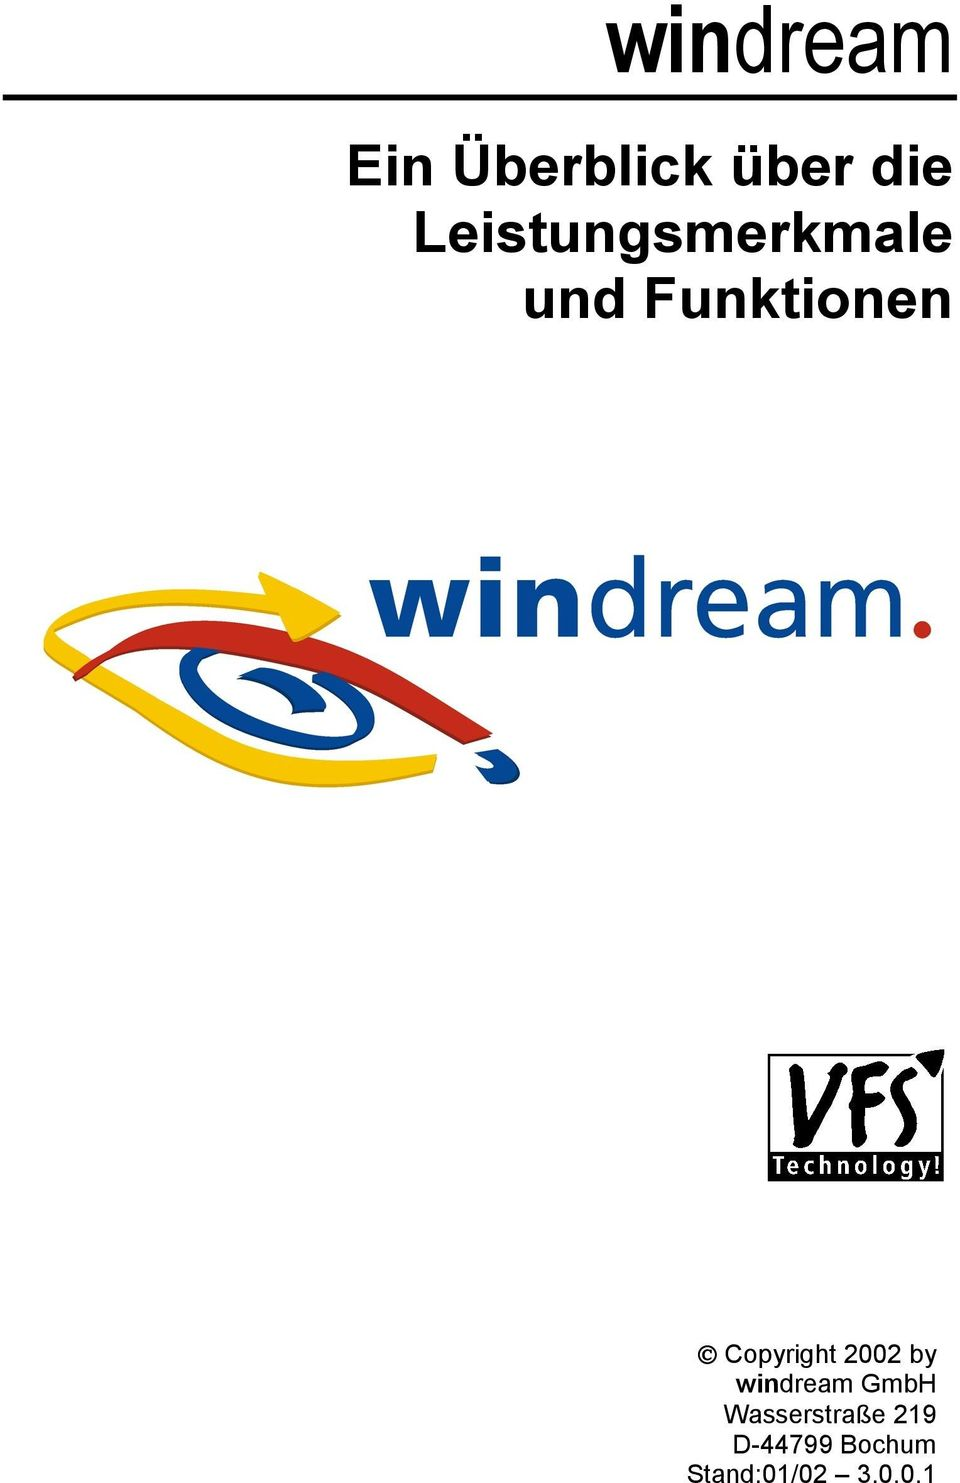 Copyright 2002 by windream GmbH